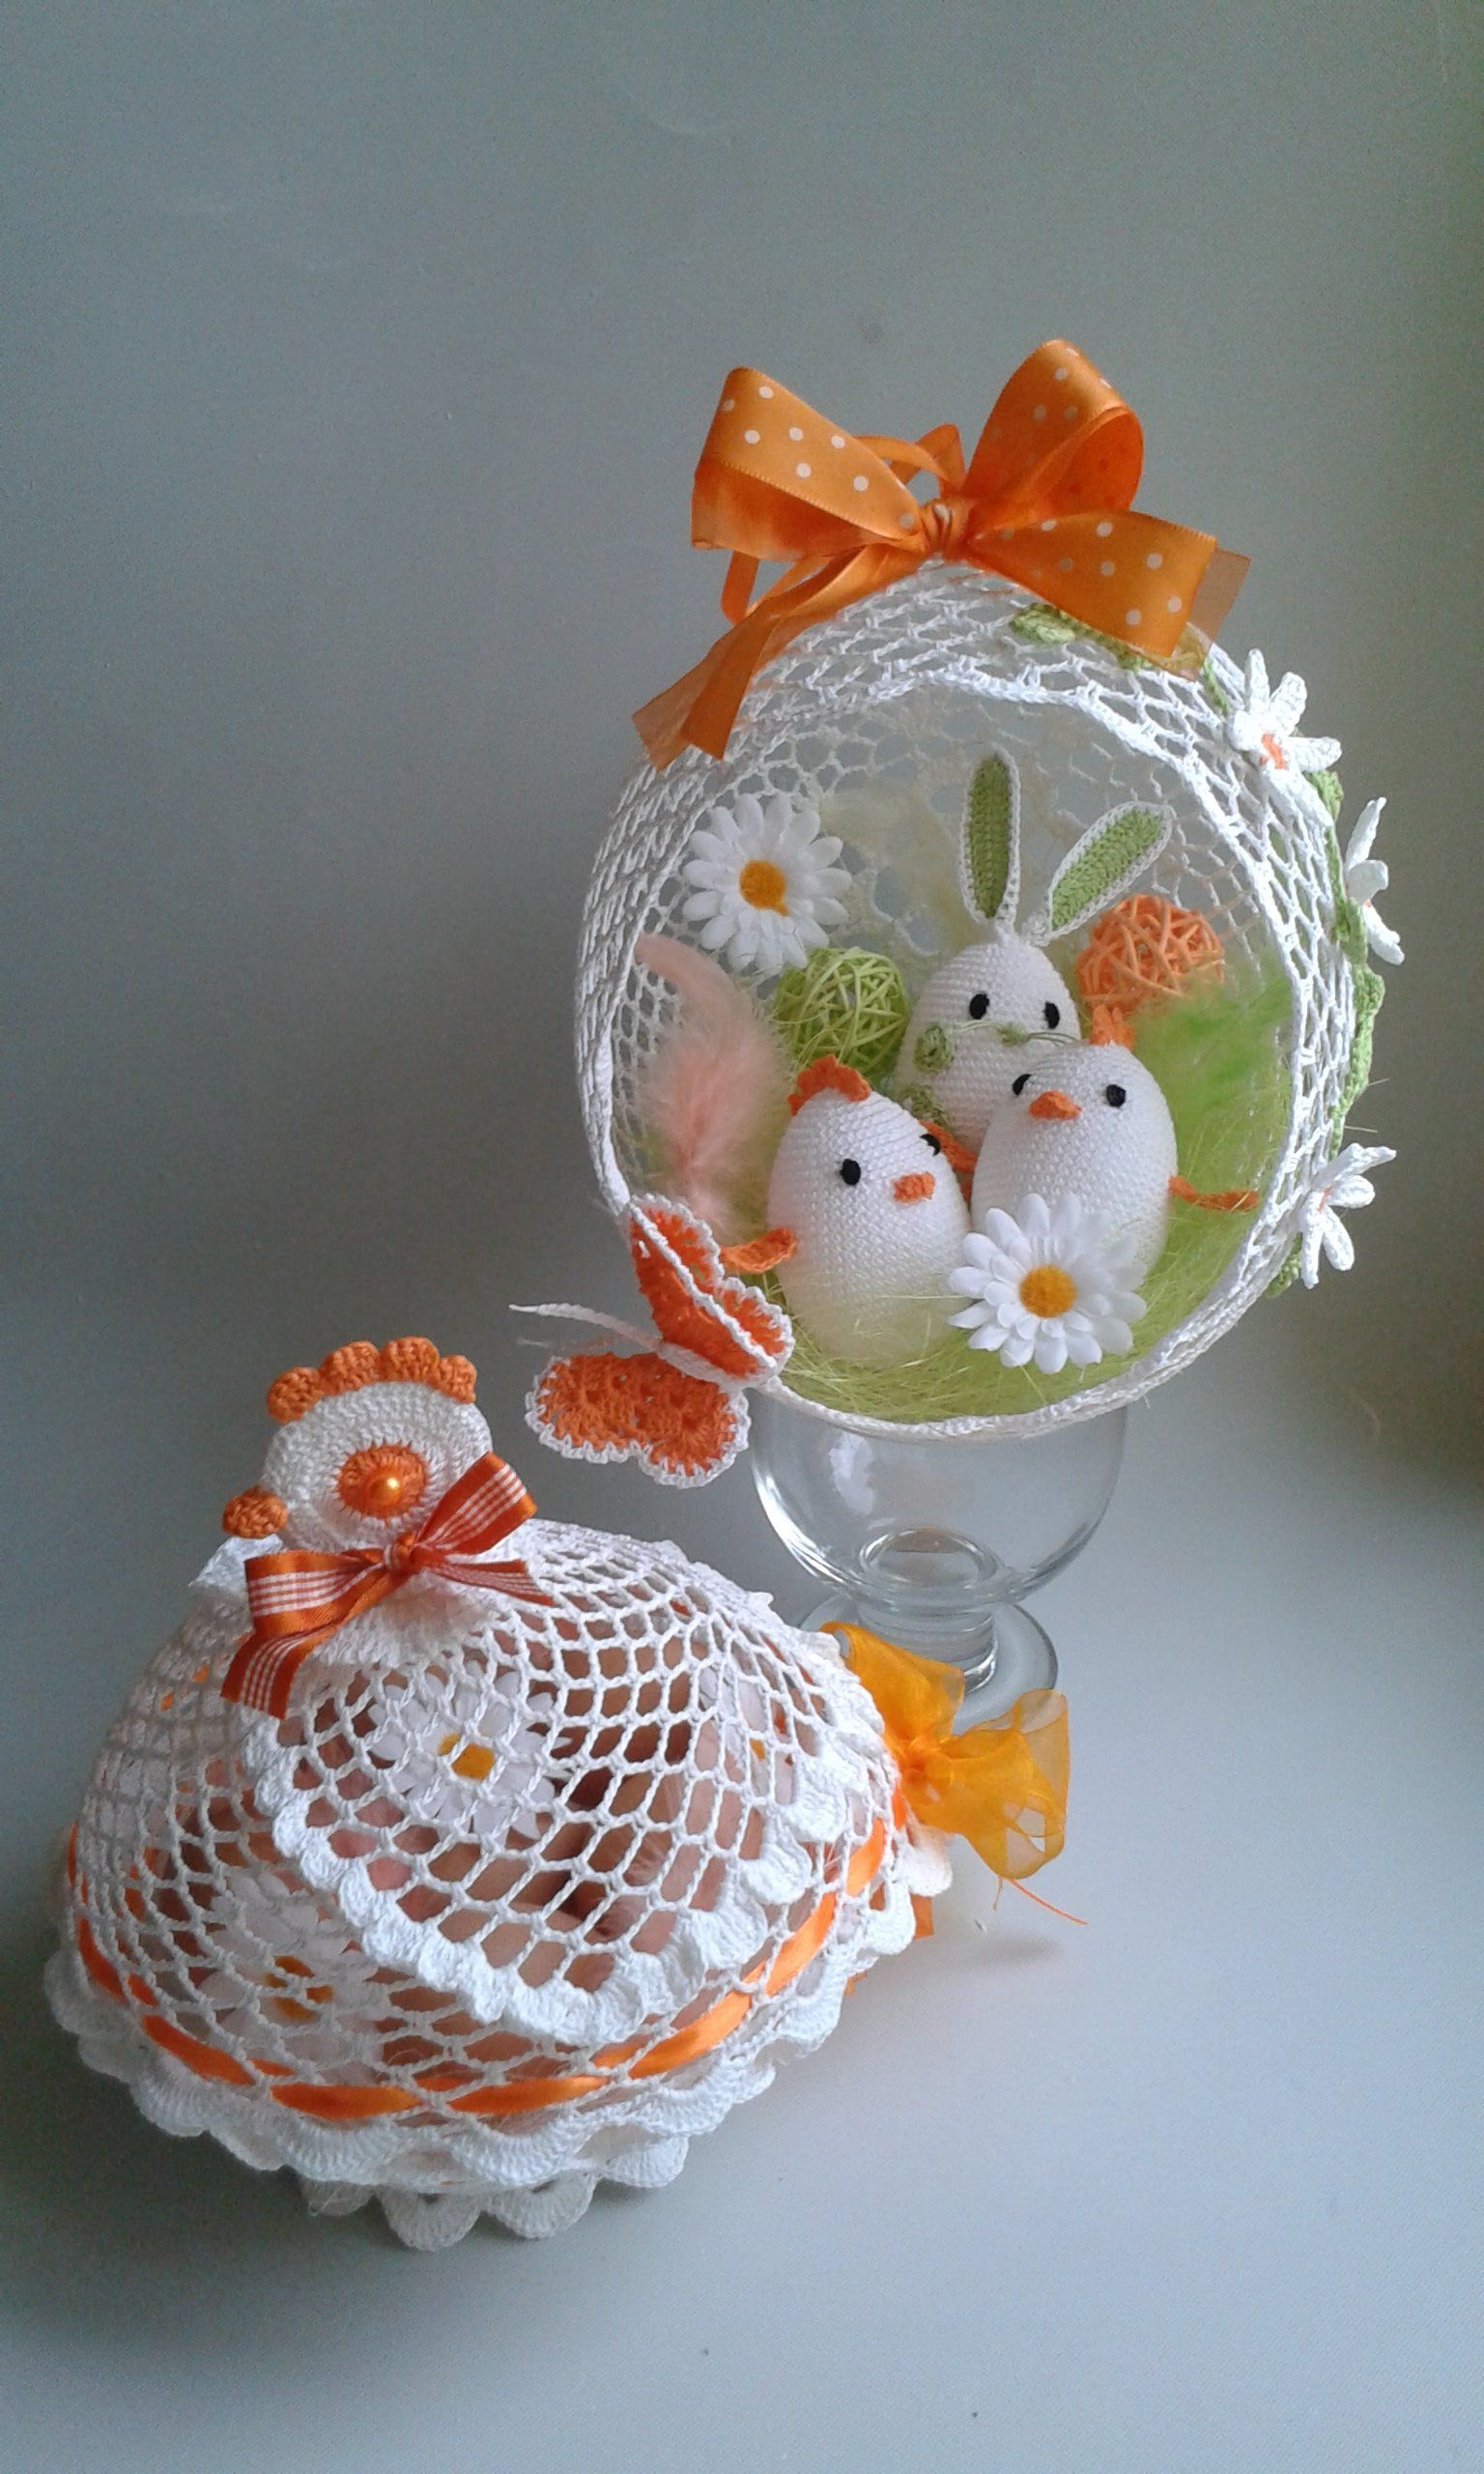 Kurka Szydelkowa Duza Kura Nr 2 Easter Crafts Diy Easter Crafts Crochet Easter Basket